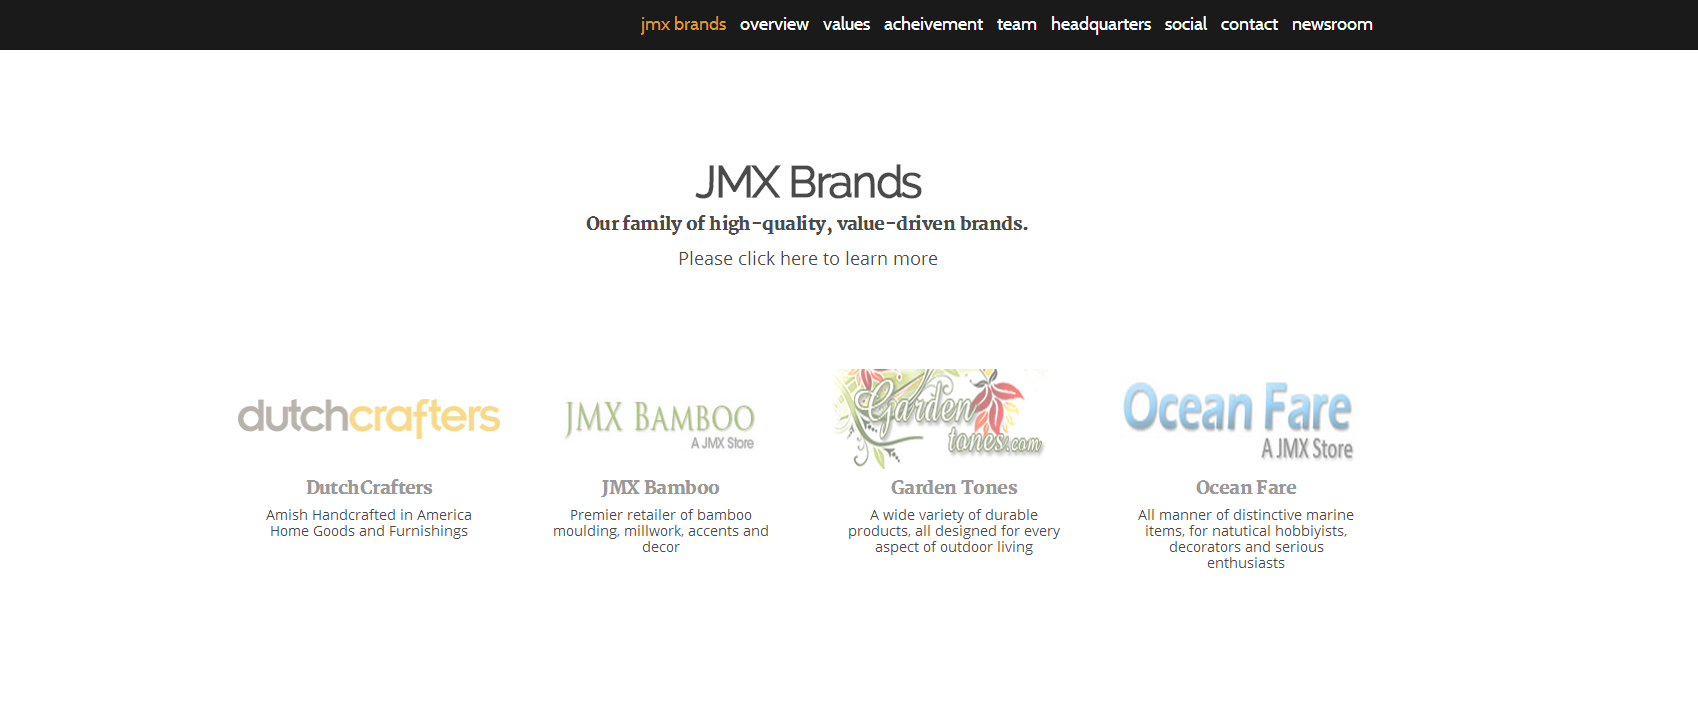 The JMX Brands family of stores, as featured on the new JMXBrands.com